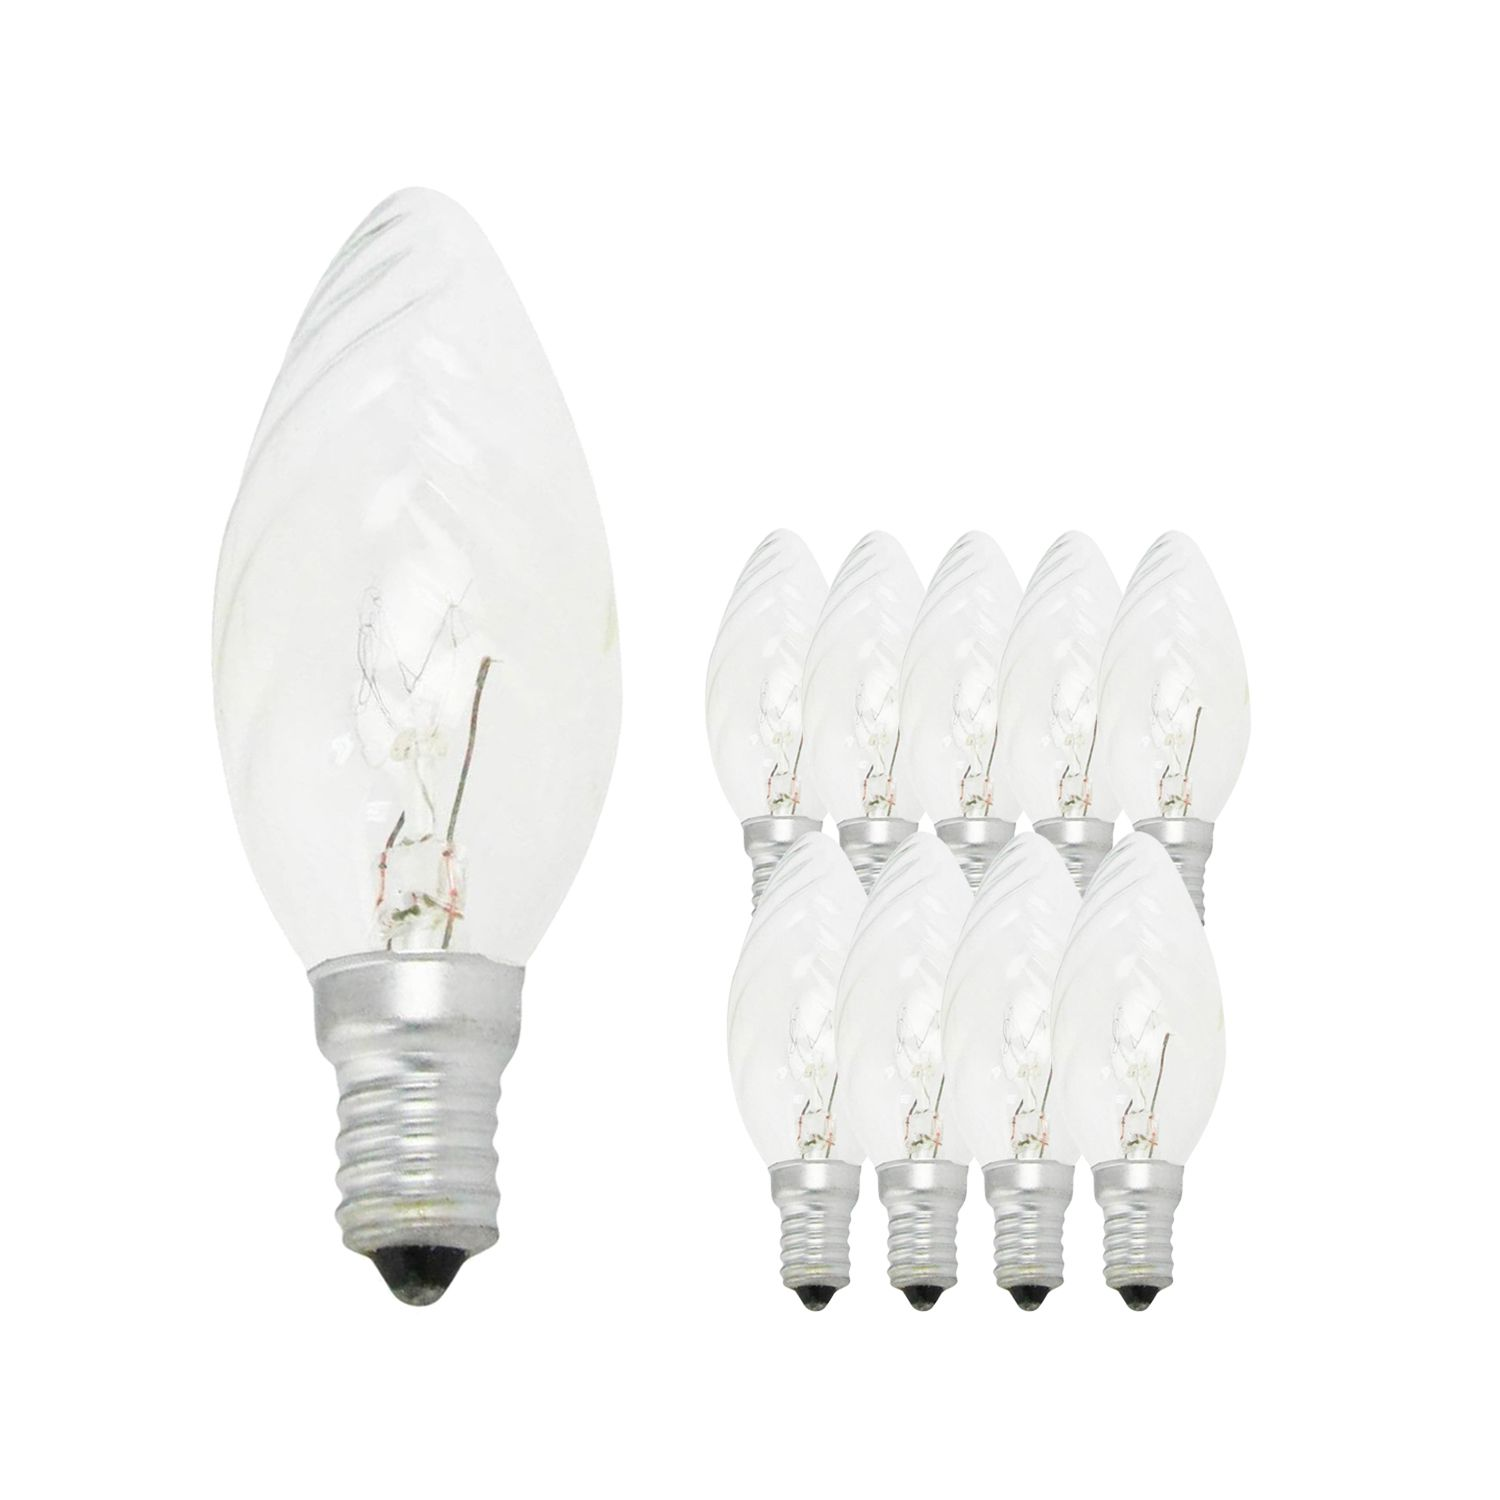 Multipack 10x Standard Incandescent Twisted Candle Clear BF35 E14 25W 230V